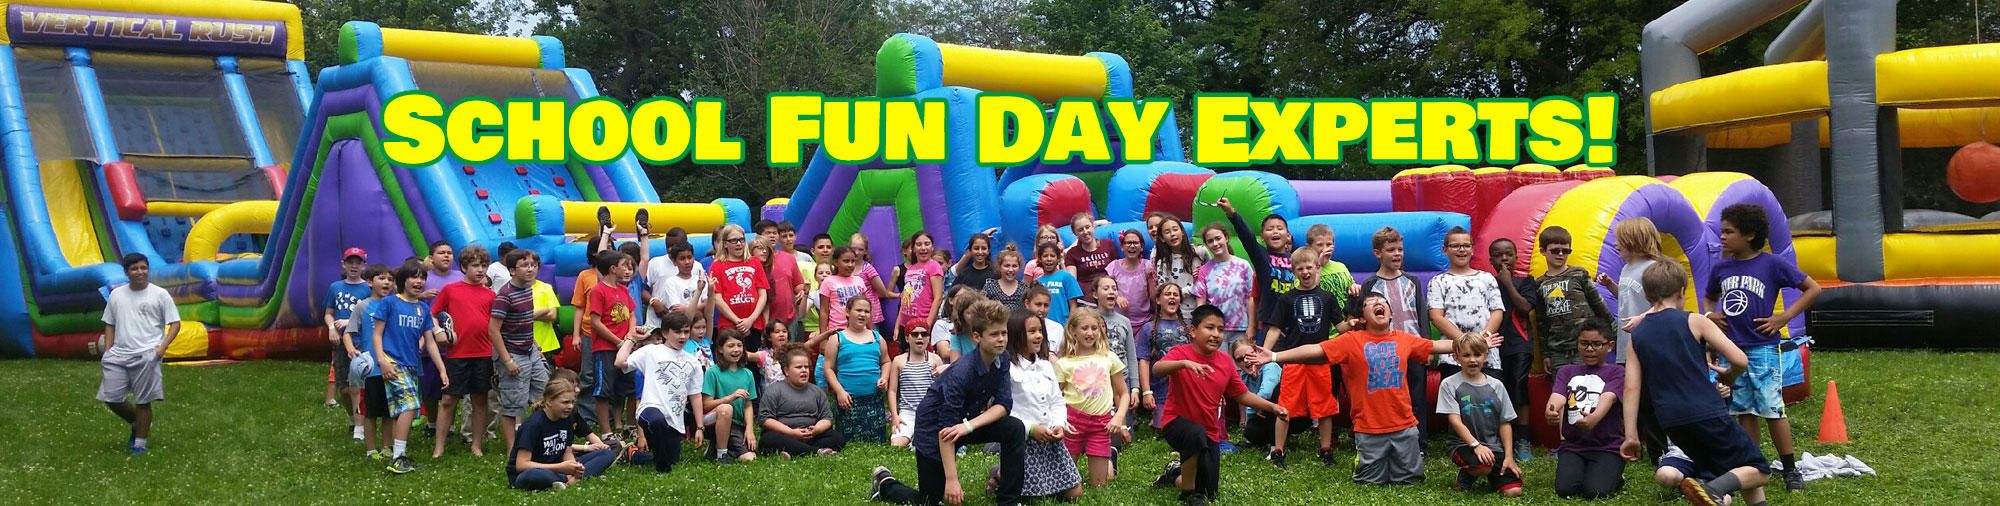 School Fun Day Experts